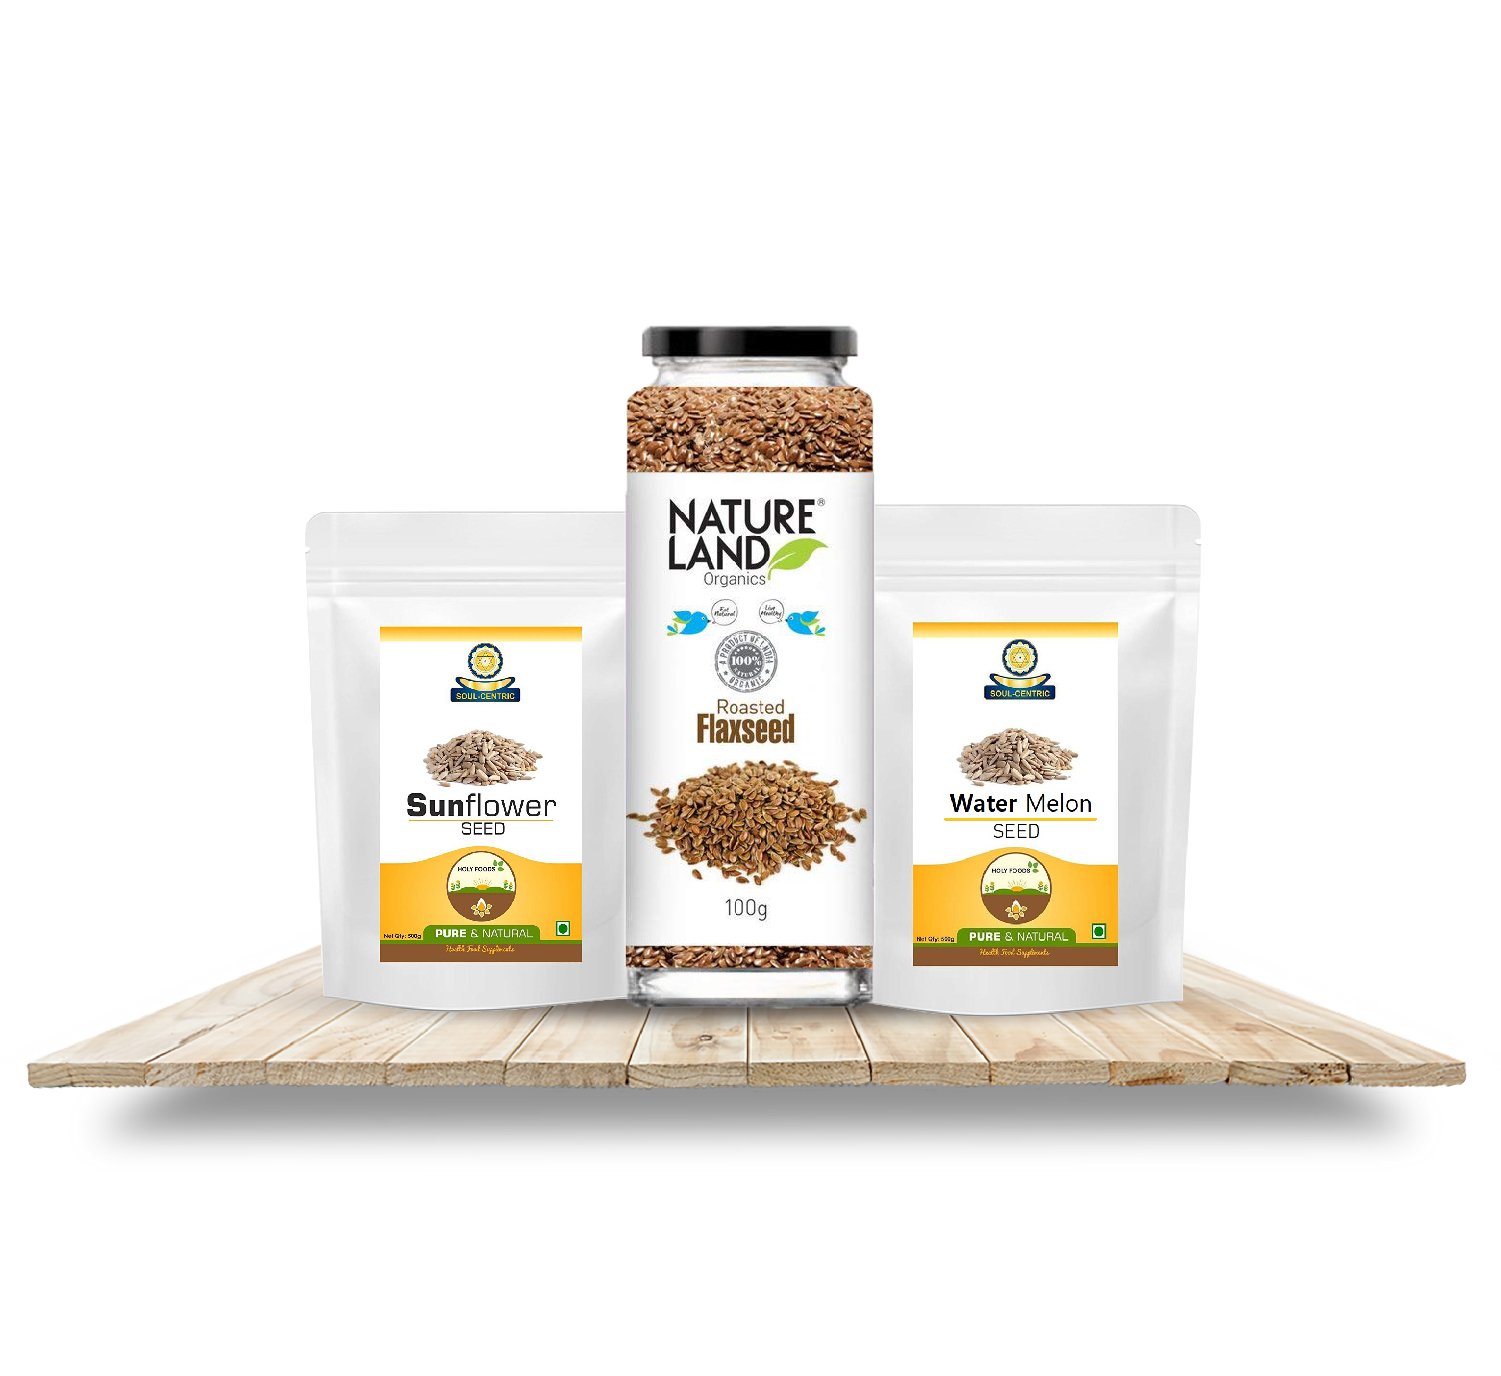 Flax seeds, Chia seeds & other Seeds